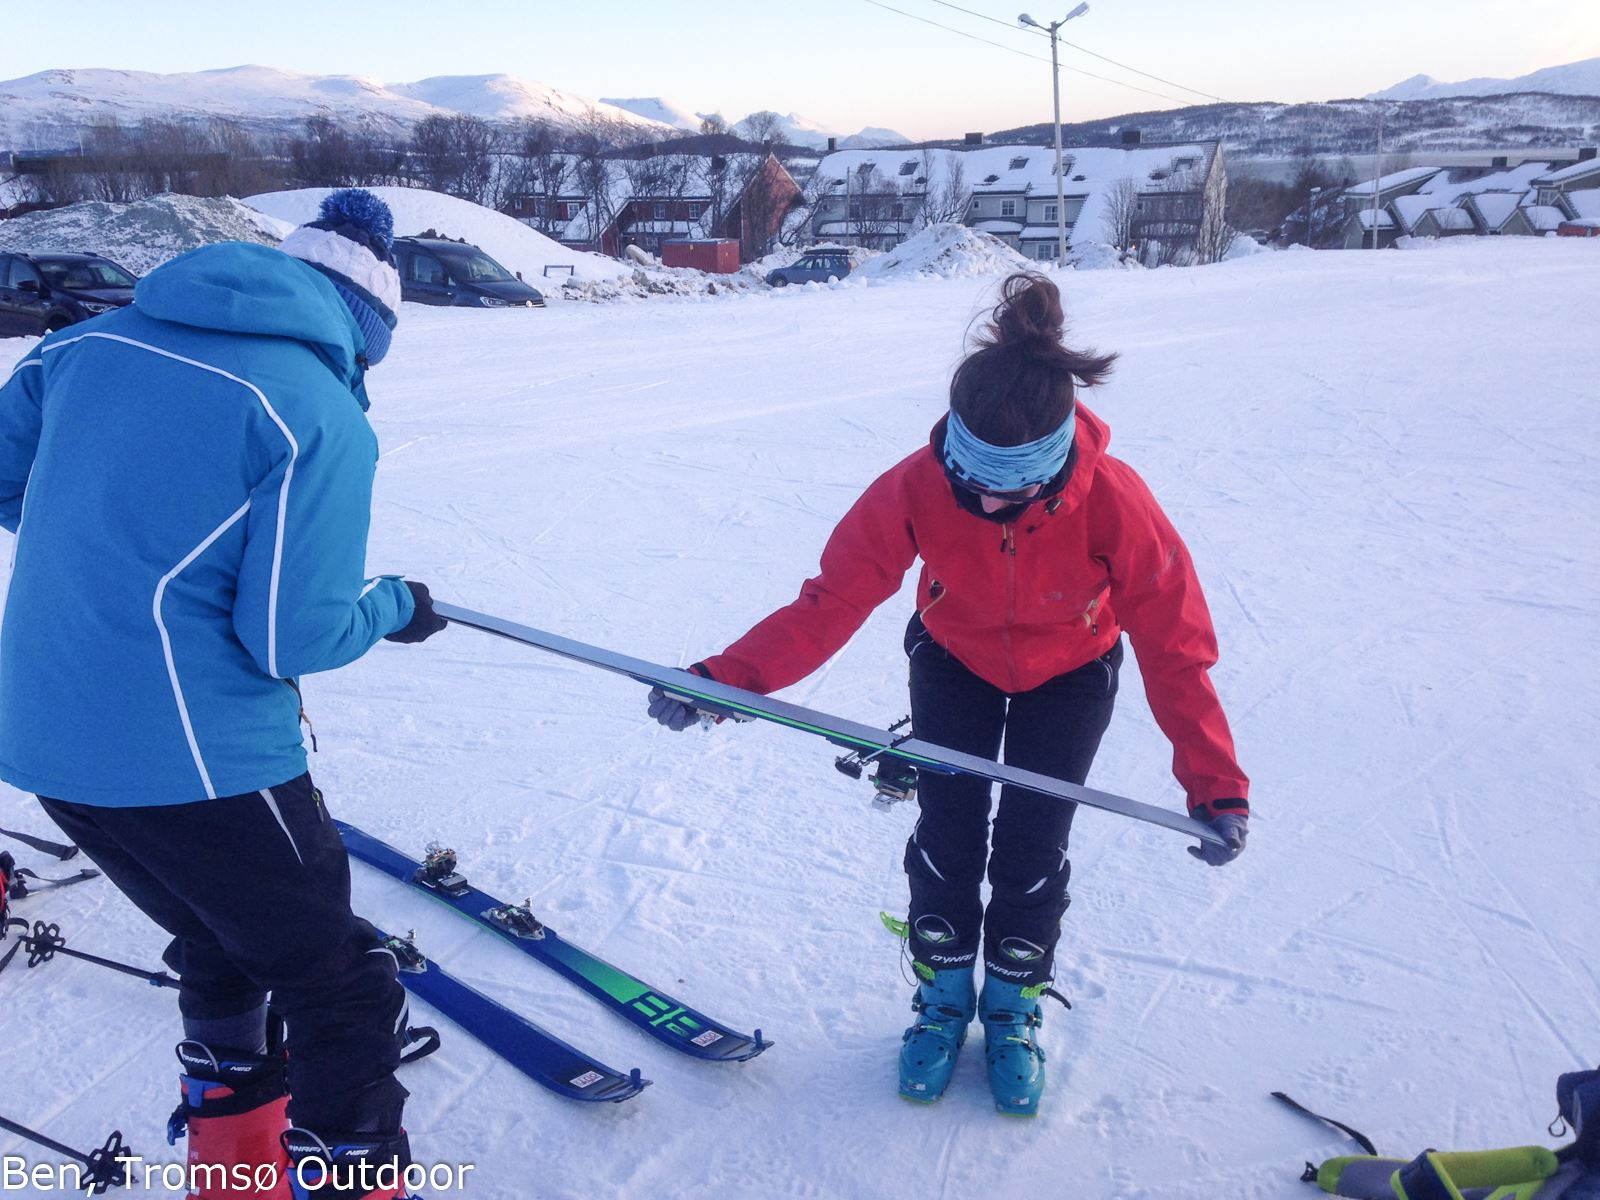 Introduction to Ski Touring – guided trip for alpine skiers - Tromsø Outdoor